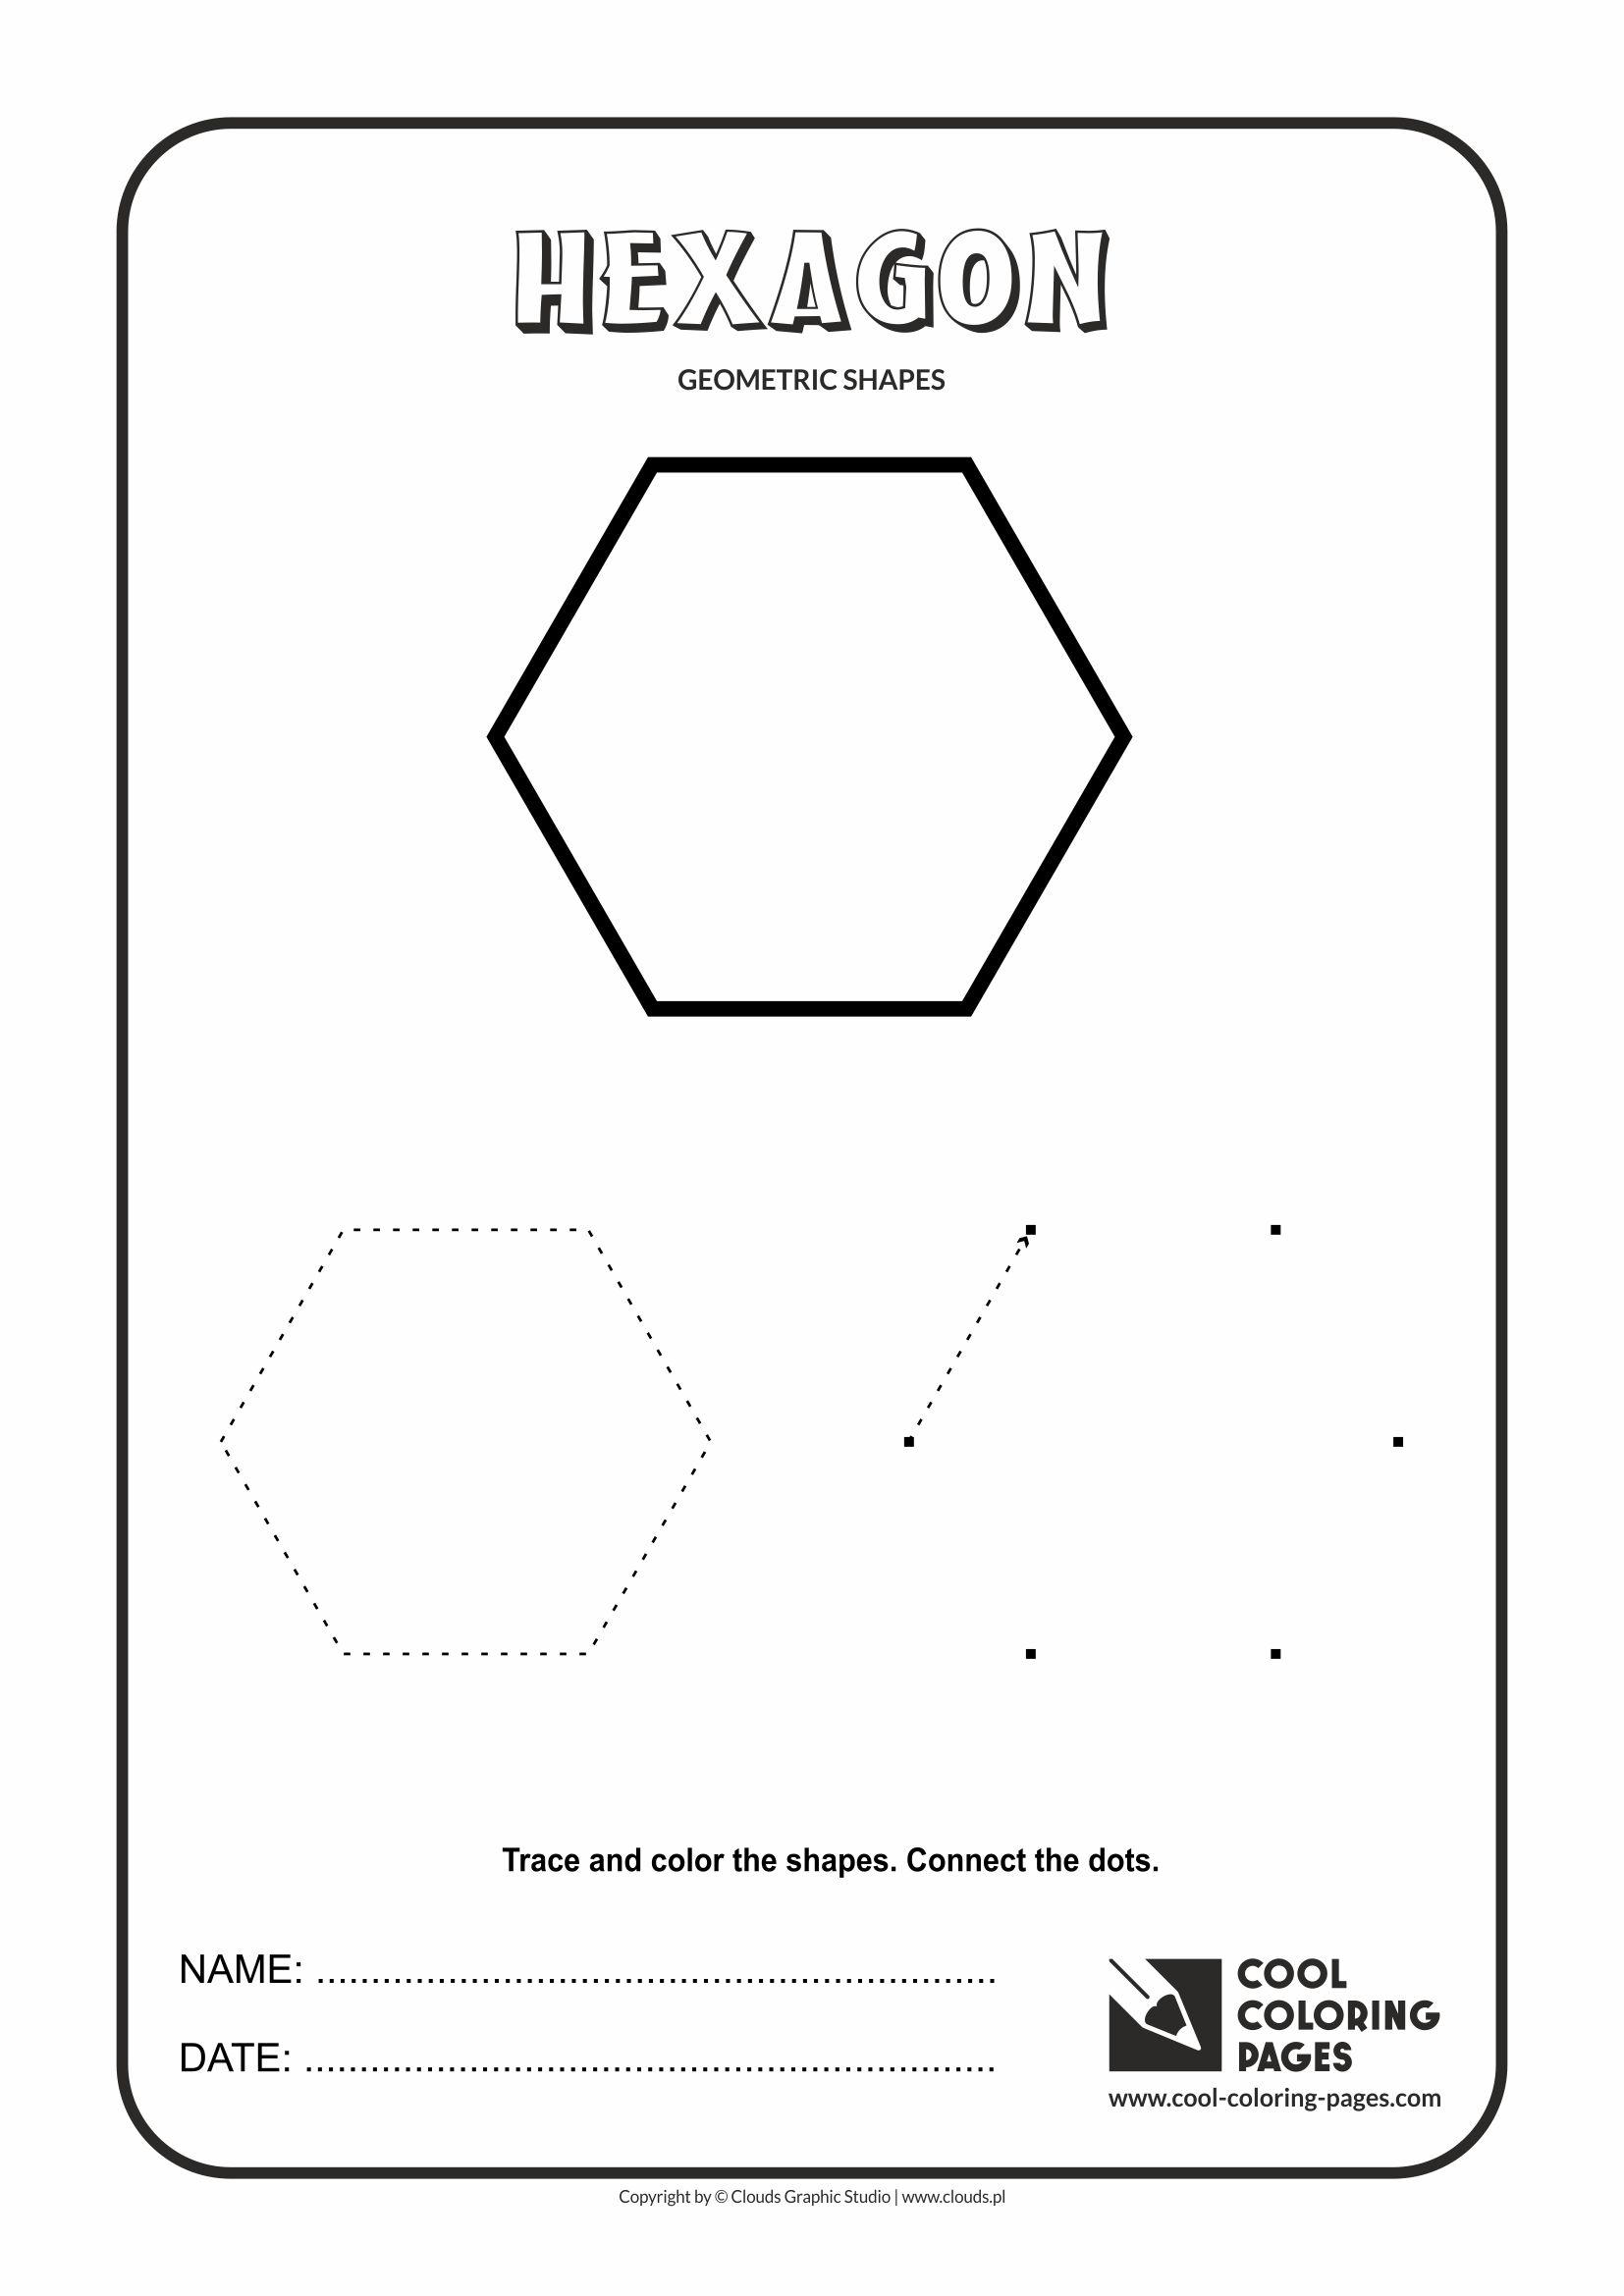 Cool Coloring Pages - Geometric shapes / Hexagon